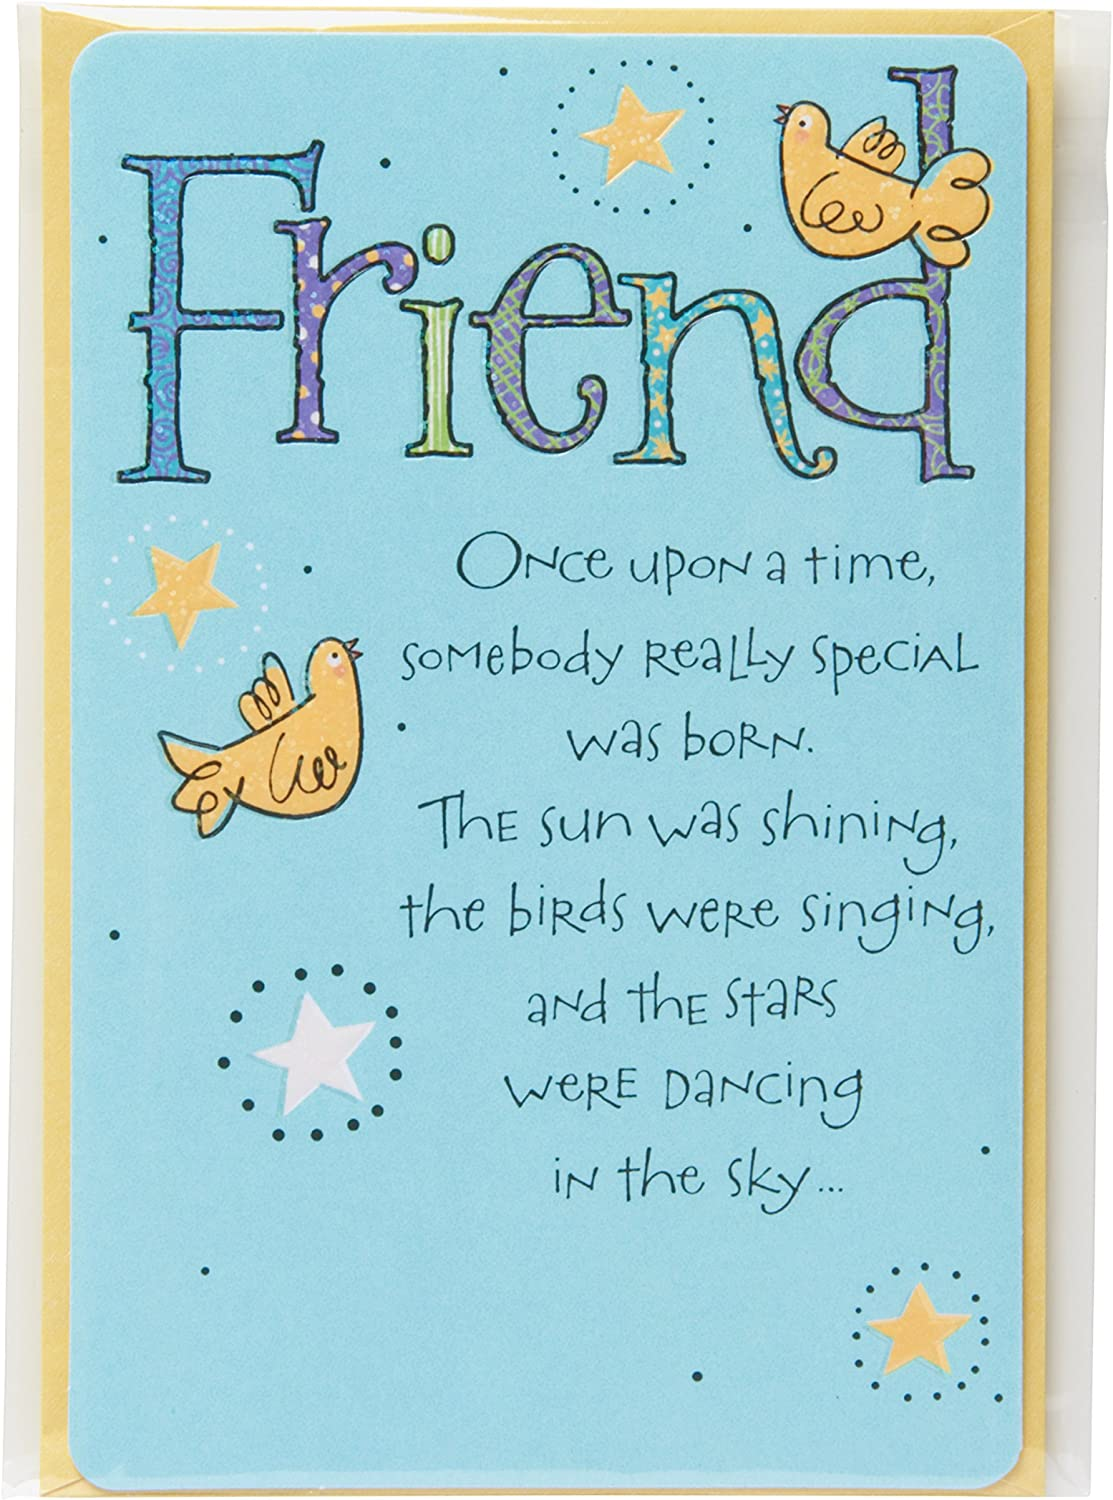 Astonishing Amazon Com American Greetings Bird And Stars Birthday Greeting Funny Birthday Cards Online Inifodamsfinfo